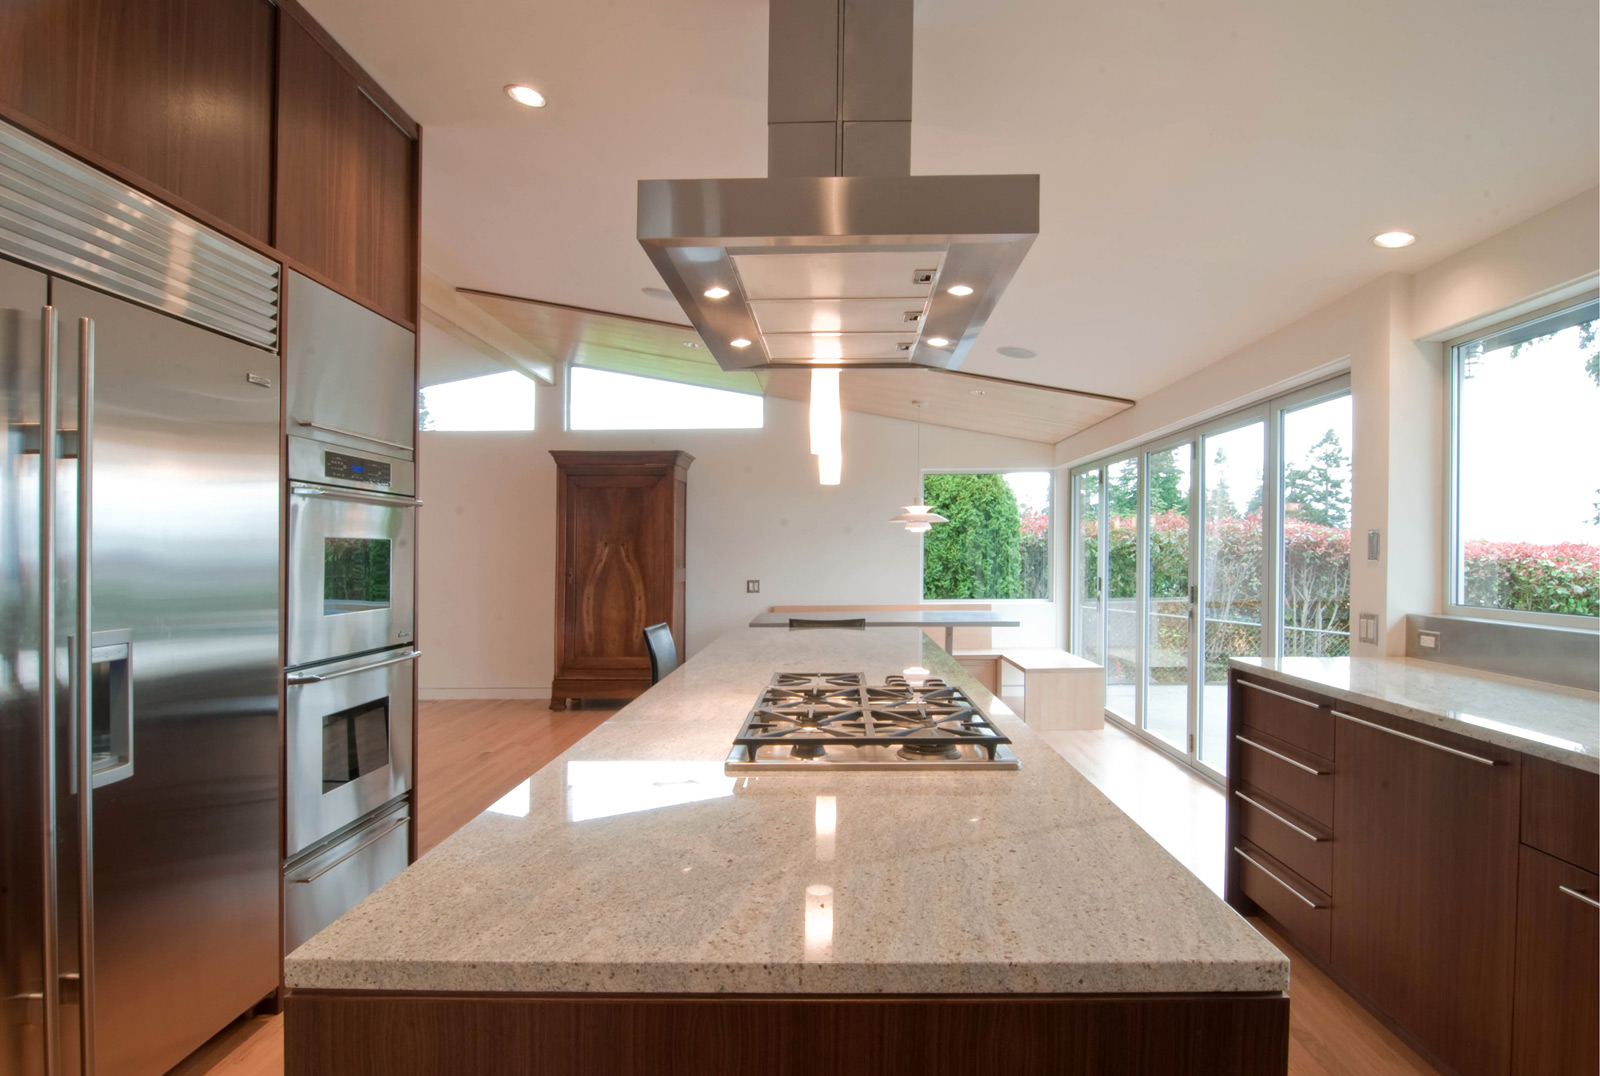 design strategies for kitchen hood venting kitchen island vent Design Strategies for Kitchen Hood Venting